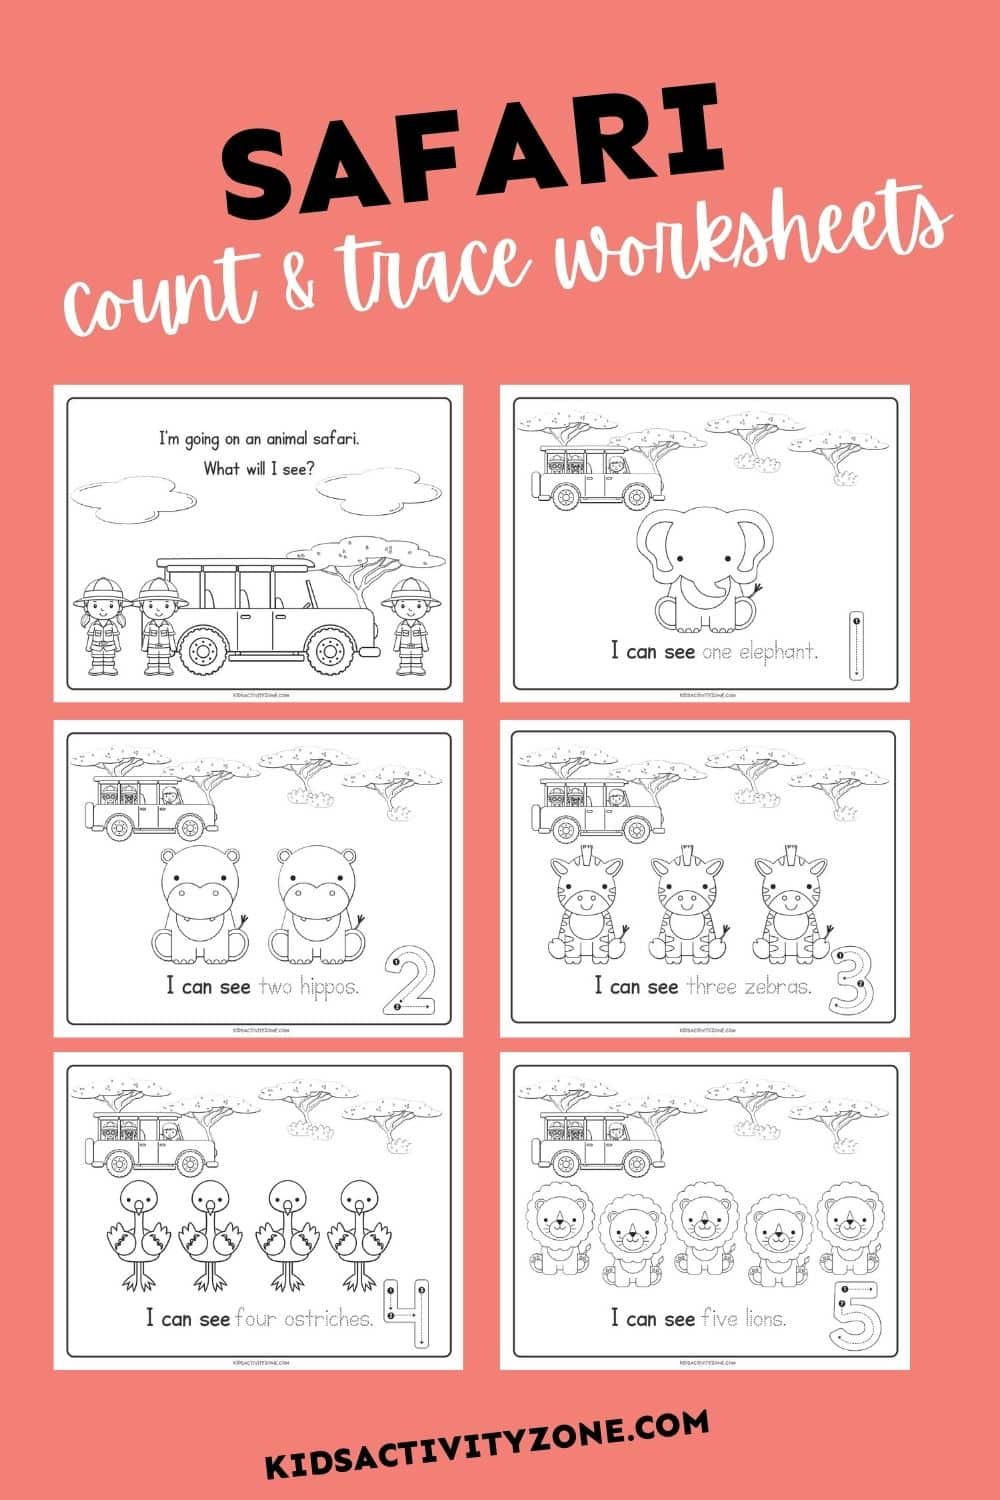 These cute, free printable count and trace worksheets are the perfect way to help your child learn their numbers! They are geared towards preschoolers and kindergarteners. Count the Safari animals in these fun number tracing worksheets, plus color the picture.